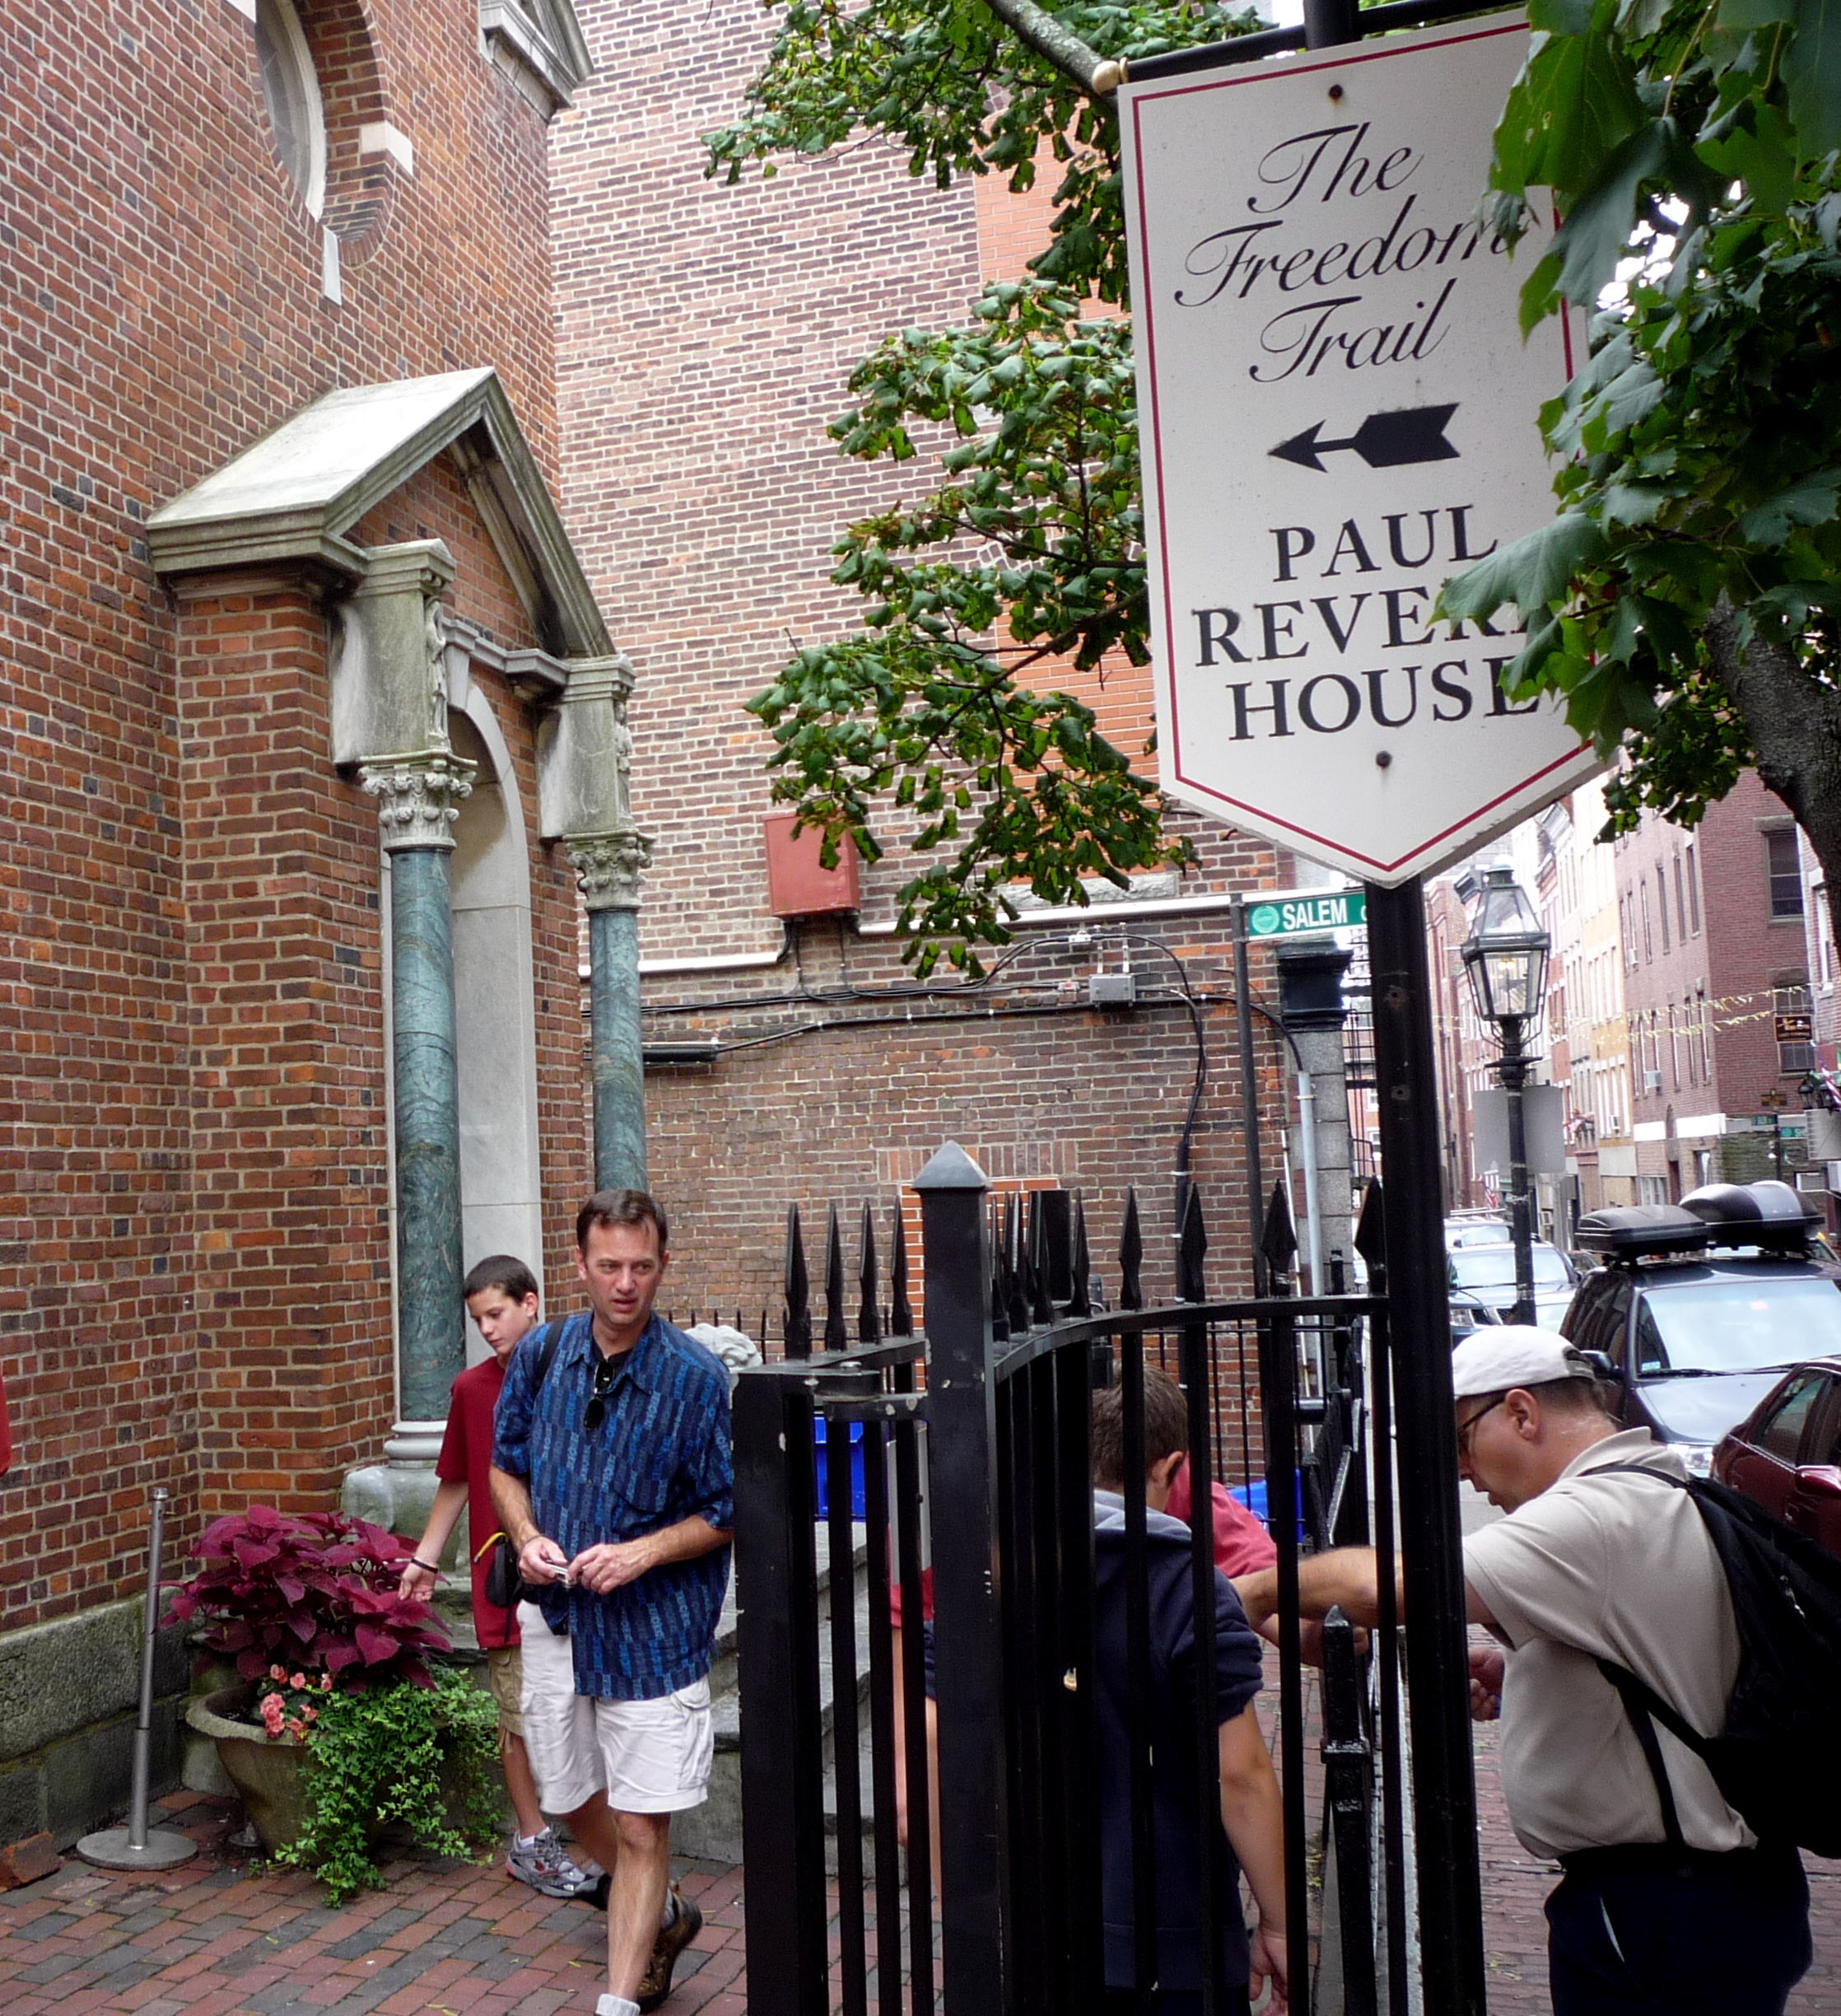 Things to Do in Boston, Mass.: Tours, Activities, Museums